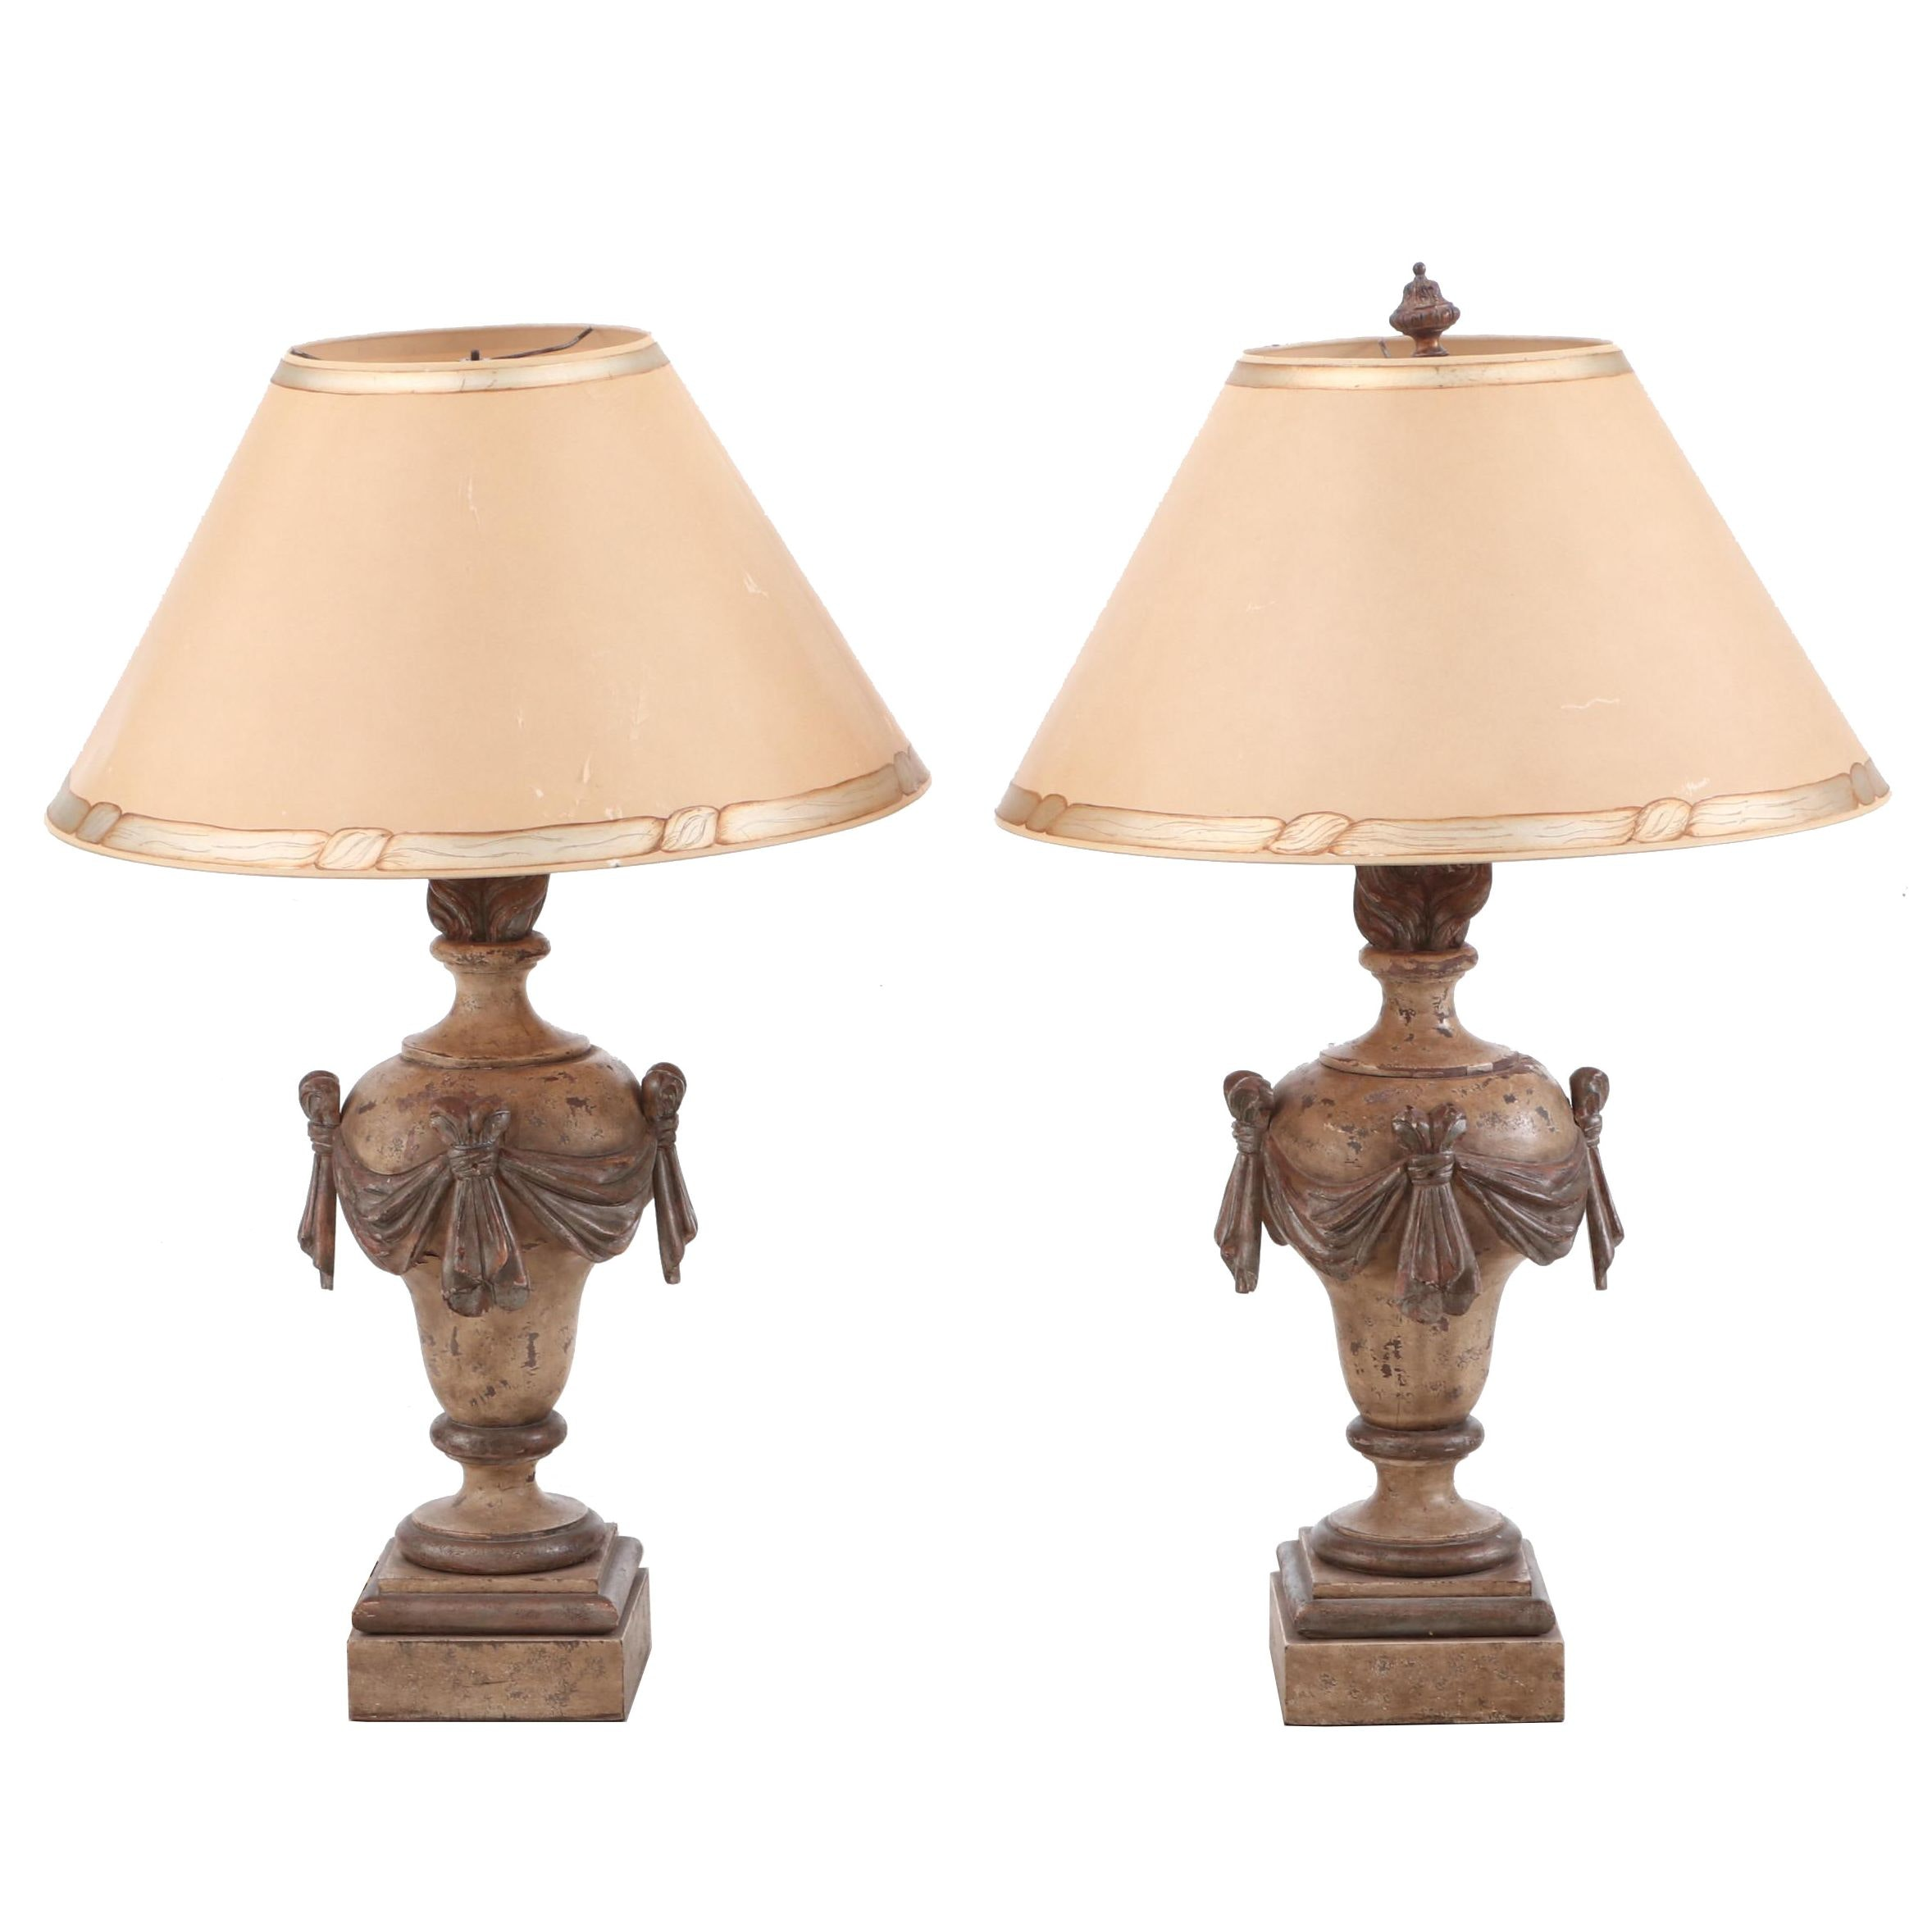 Urn and Swag Style Ceramic Table Lamps